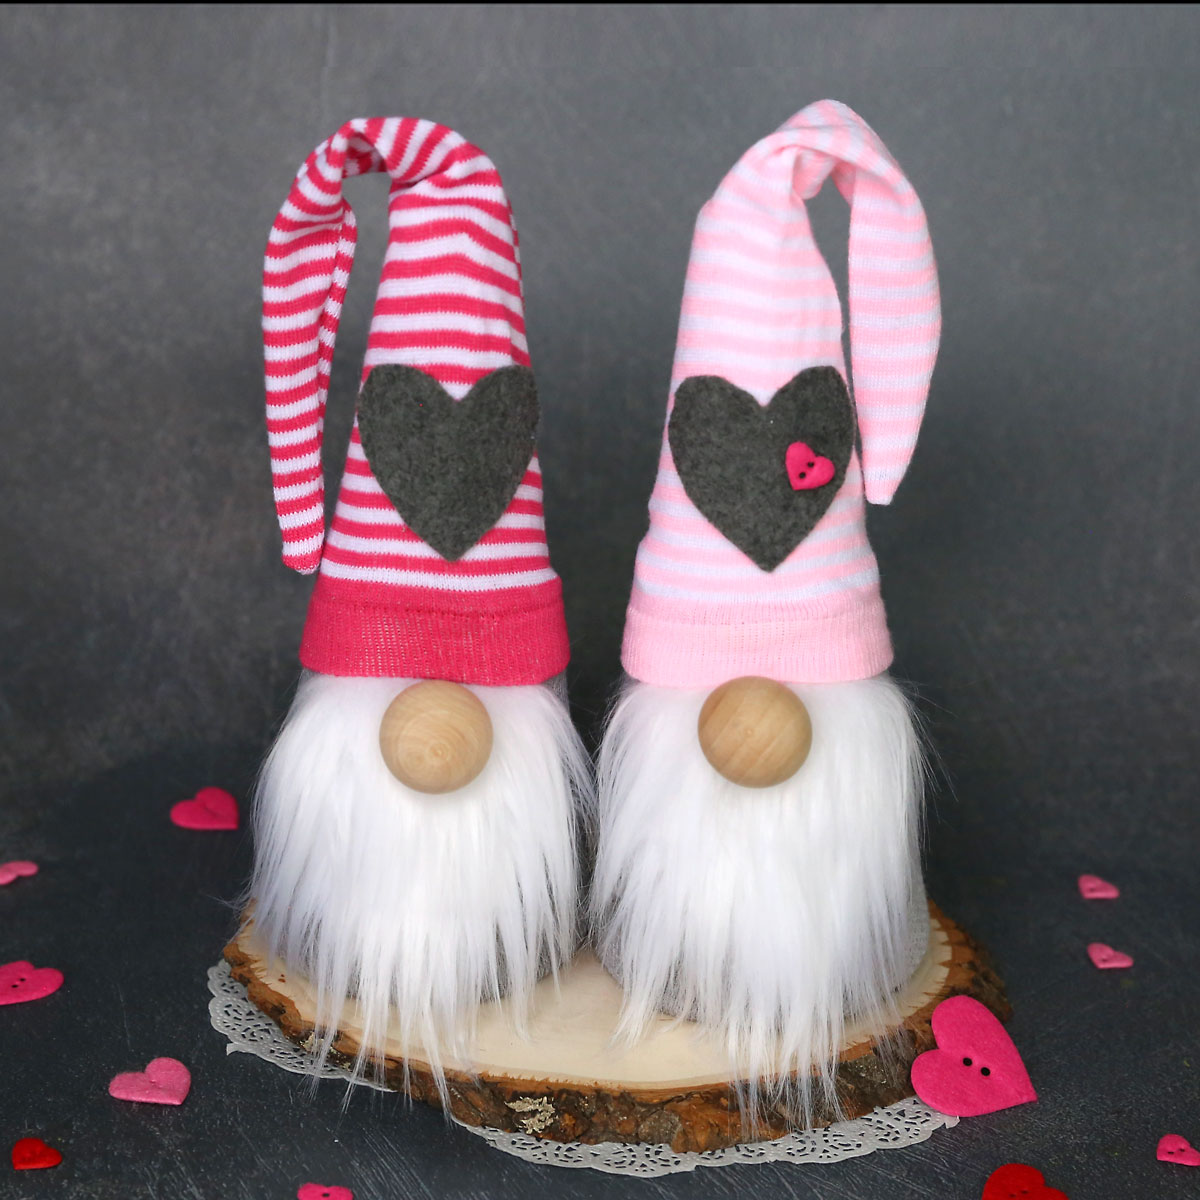 DIY sock gnomes with pink and white striped hats with hearts on them